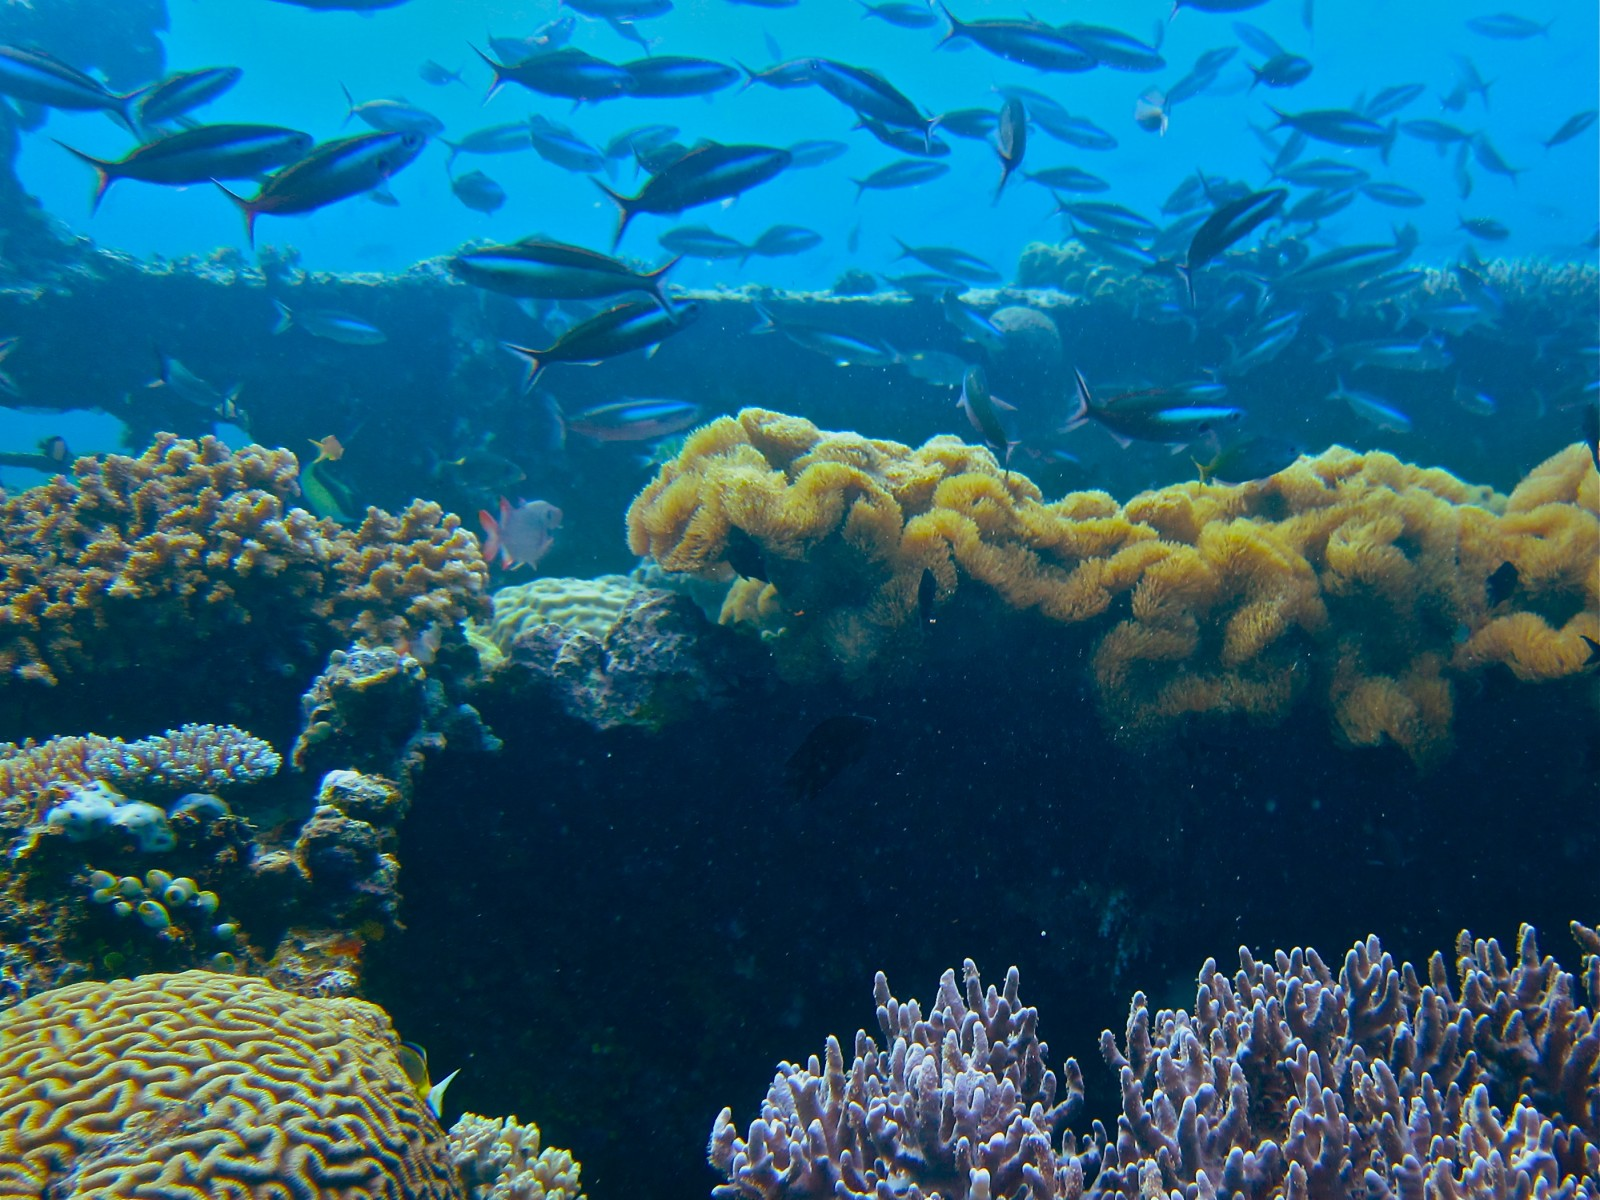 an essay on coral reefs The report, titled reefs at risk revisited, follows from the wri's 1998 assessment, reefs at risk, which described the potential threats to reefs and ignited interest in global coral conservation and research.